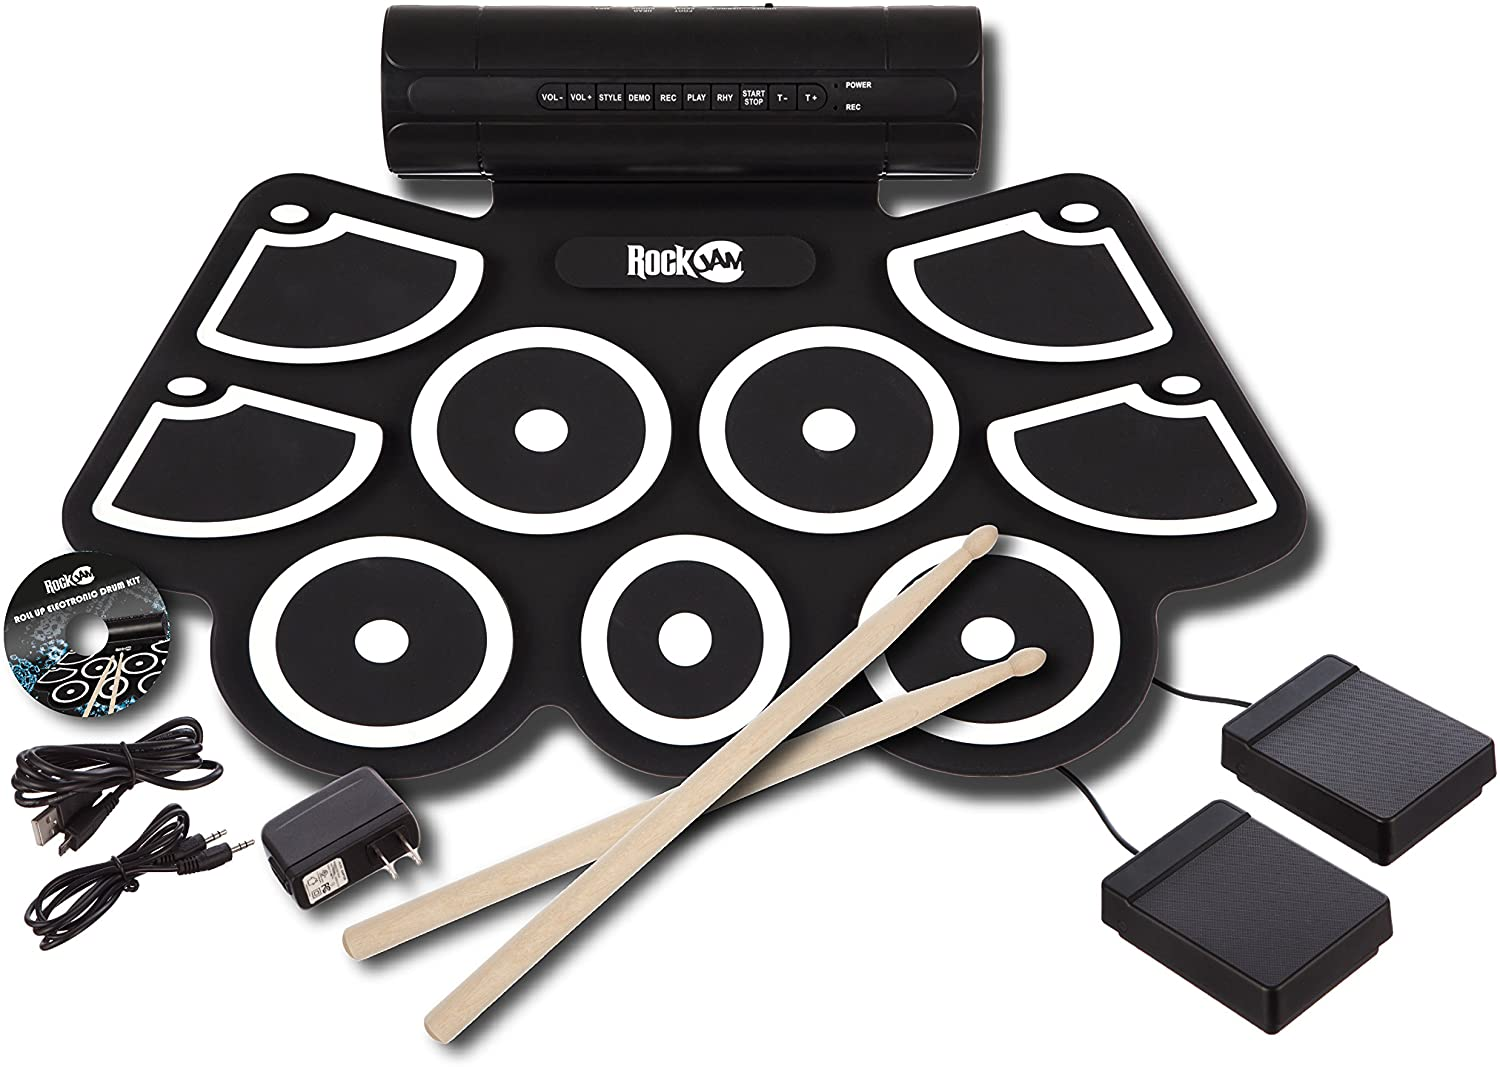 RockJam MIDI Portable Electronic Drum Kit